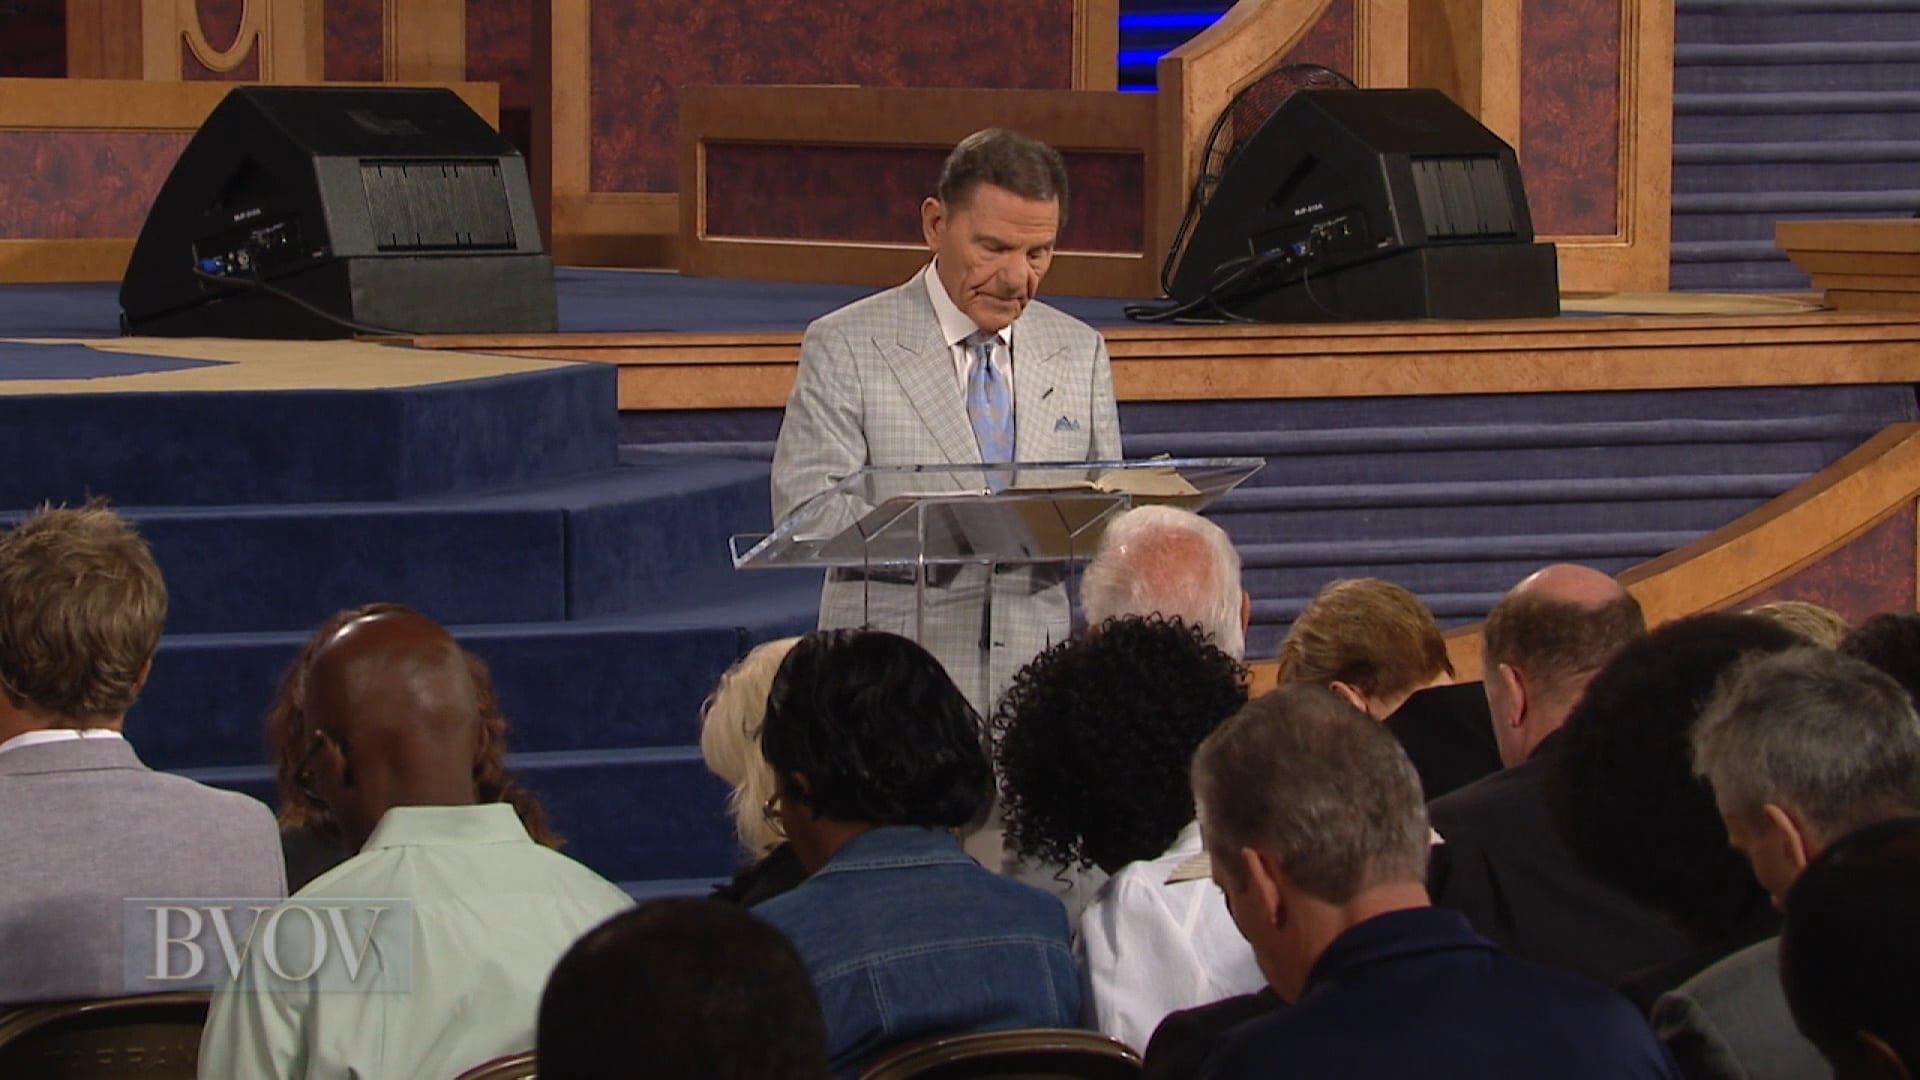 Watch God's WORD Is Final Authority